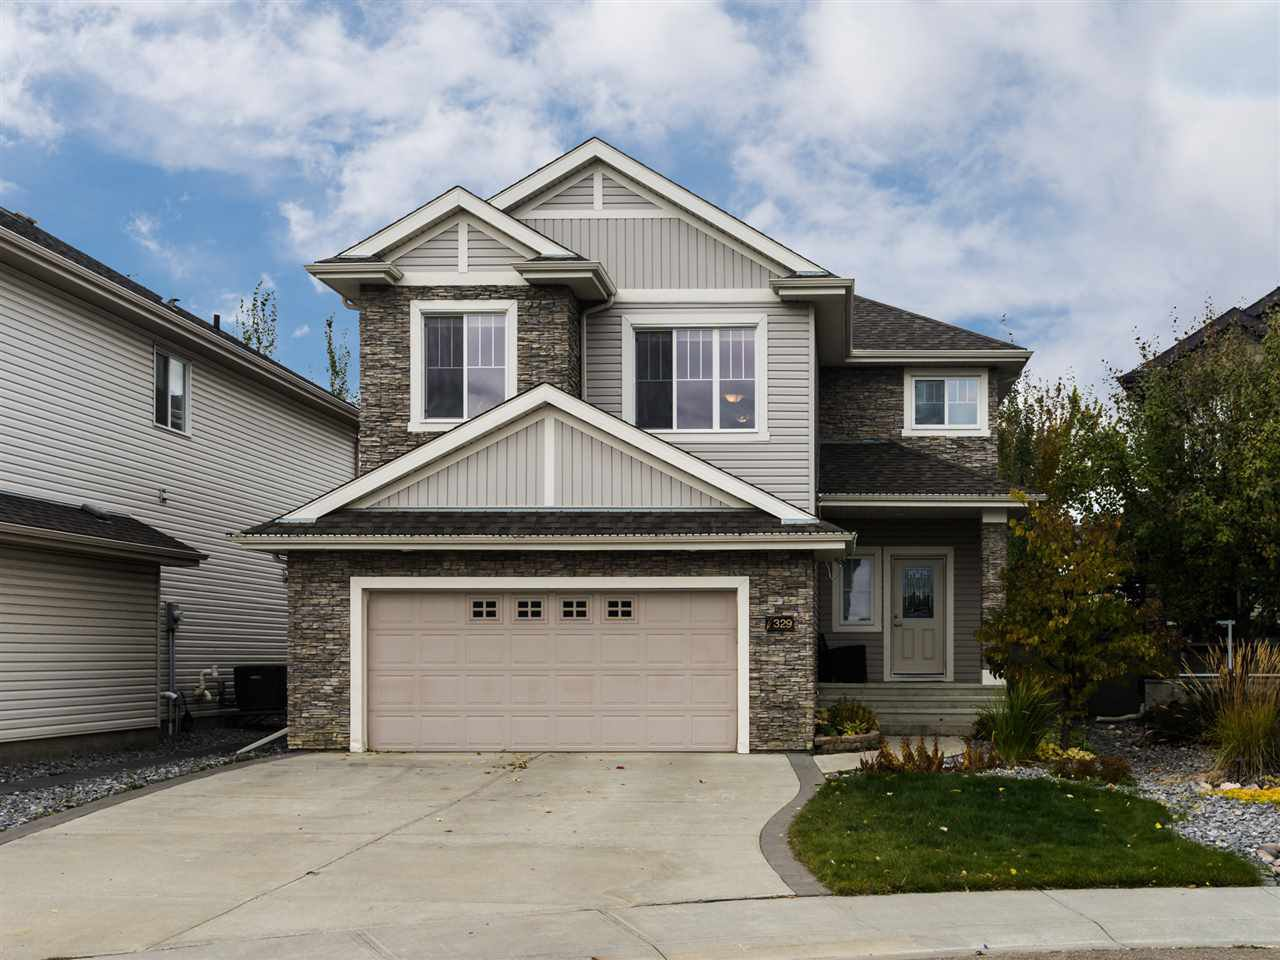 Main Photo: 329 CALLAGHAN Close in Edmonton: Zone 55 House for sale : MLS®# E4176850